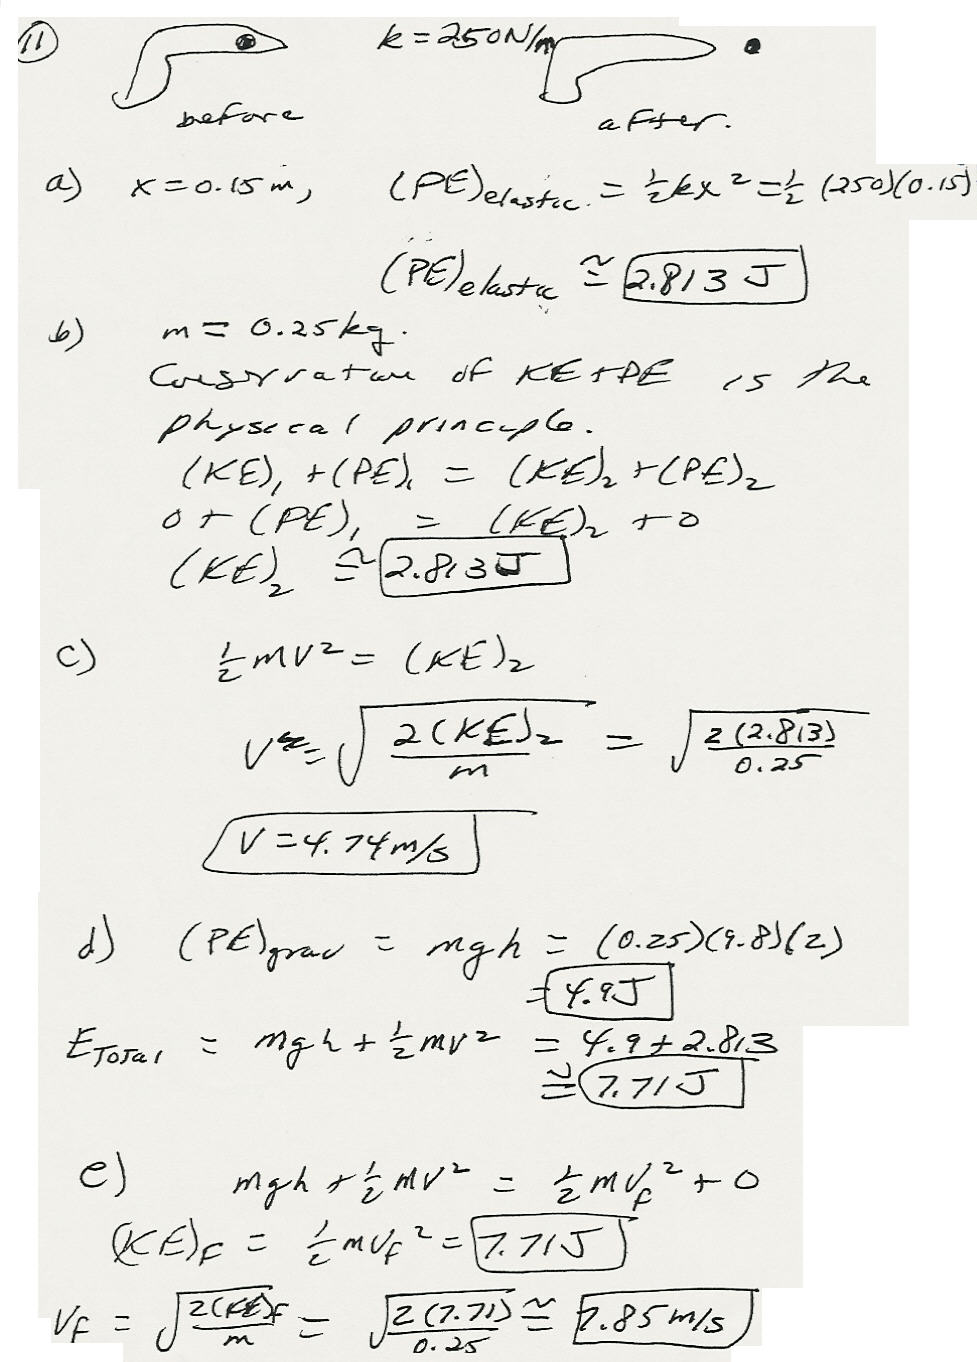 physics 4304 homework 1 2 3 6 Is True or False solution pages 1 2 3 4 5 6 7 8 9 10 11 12